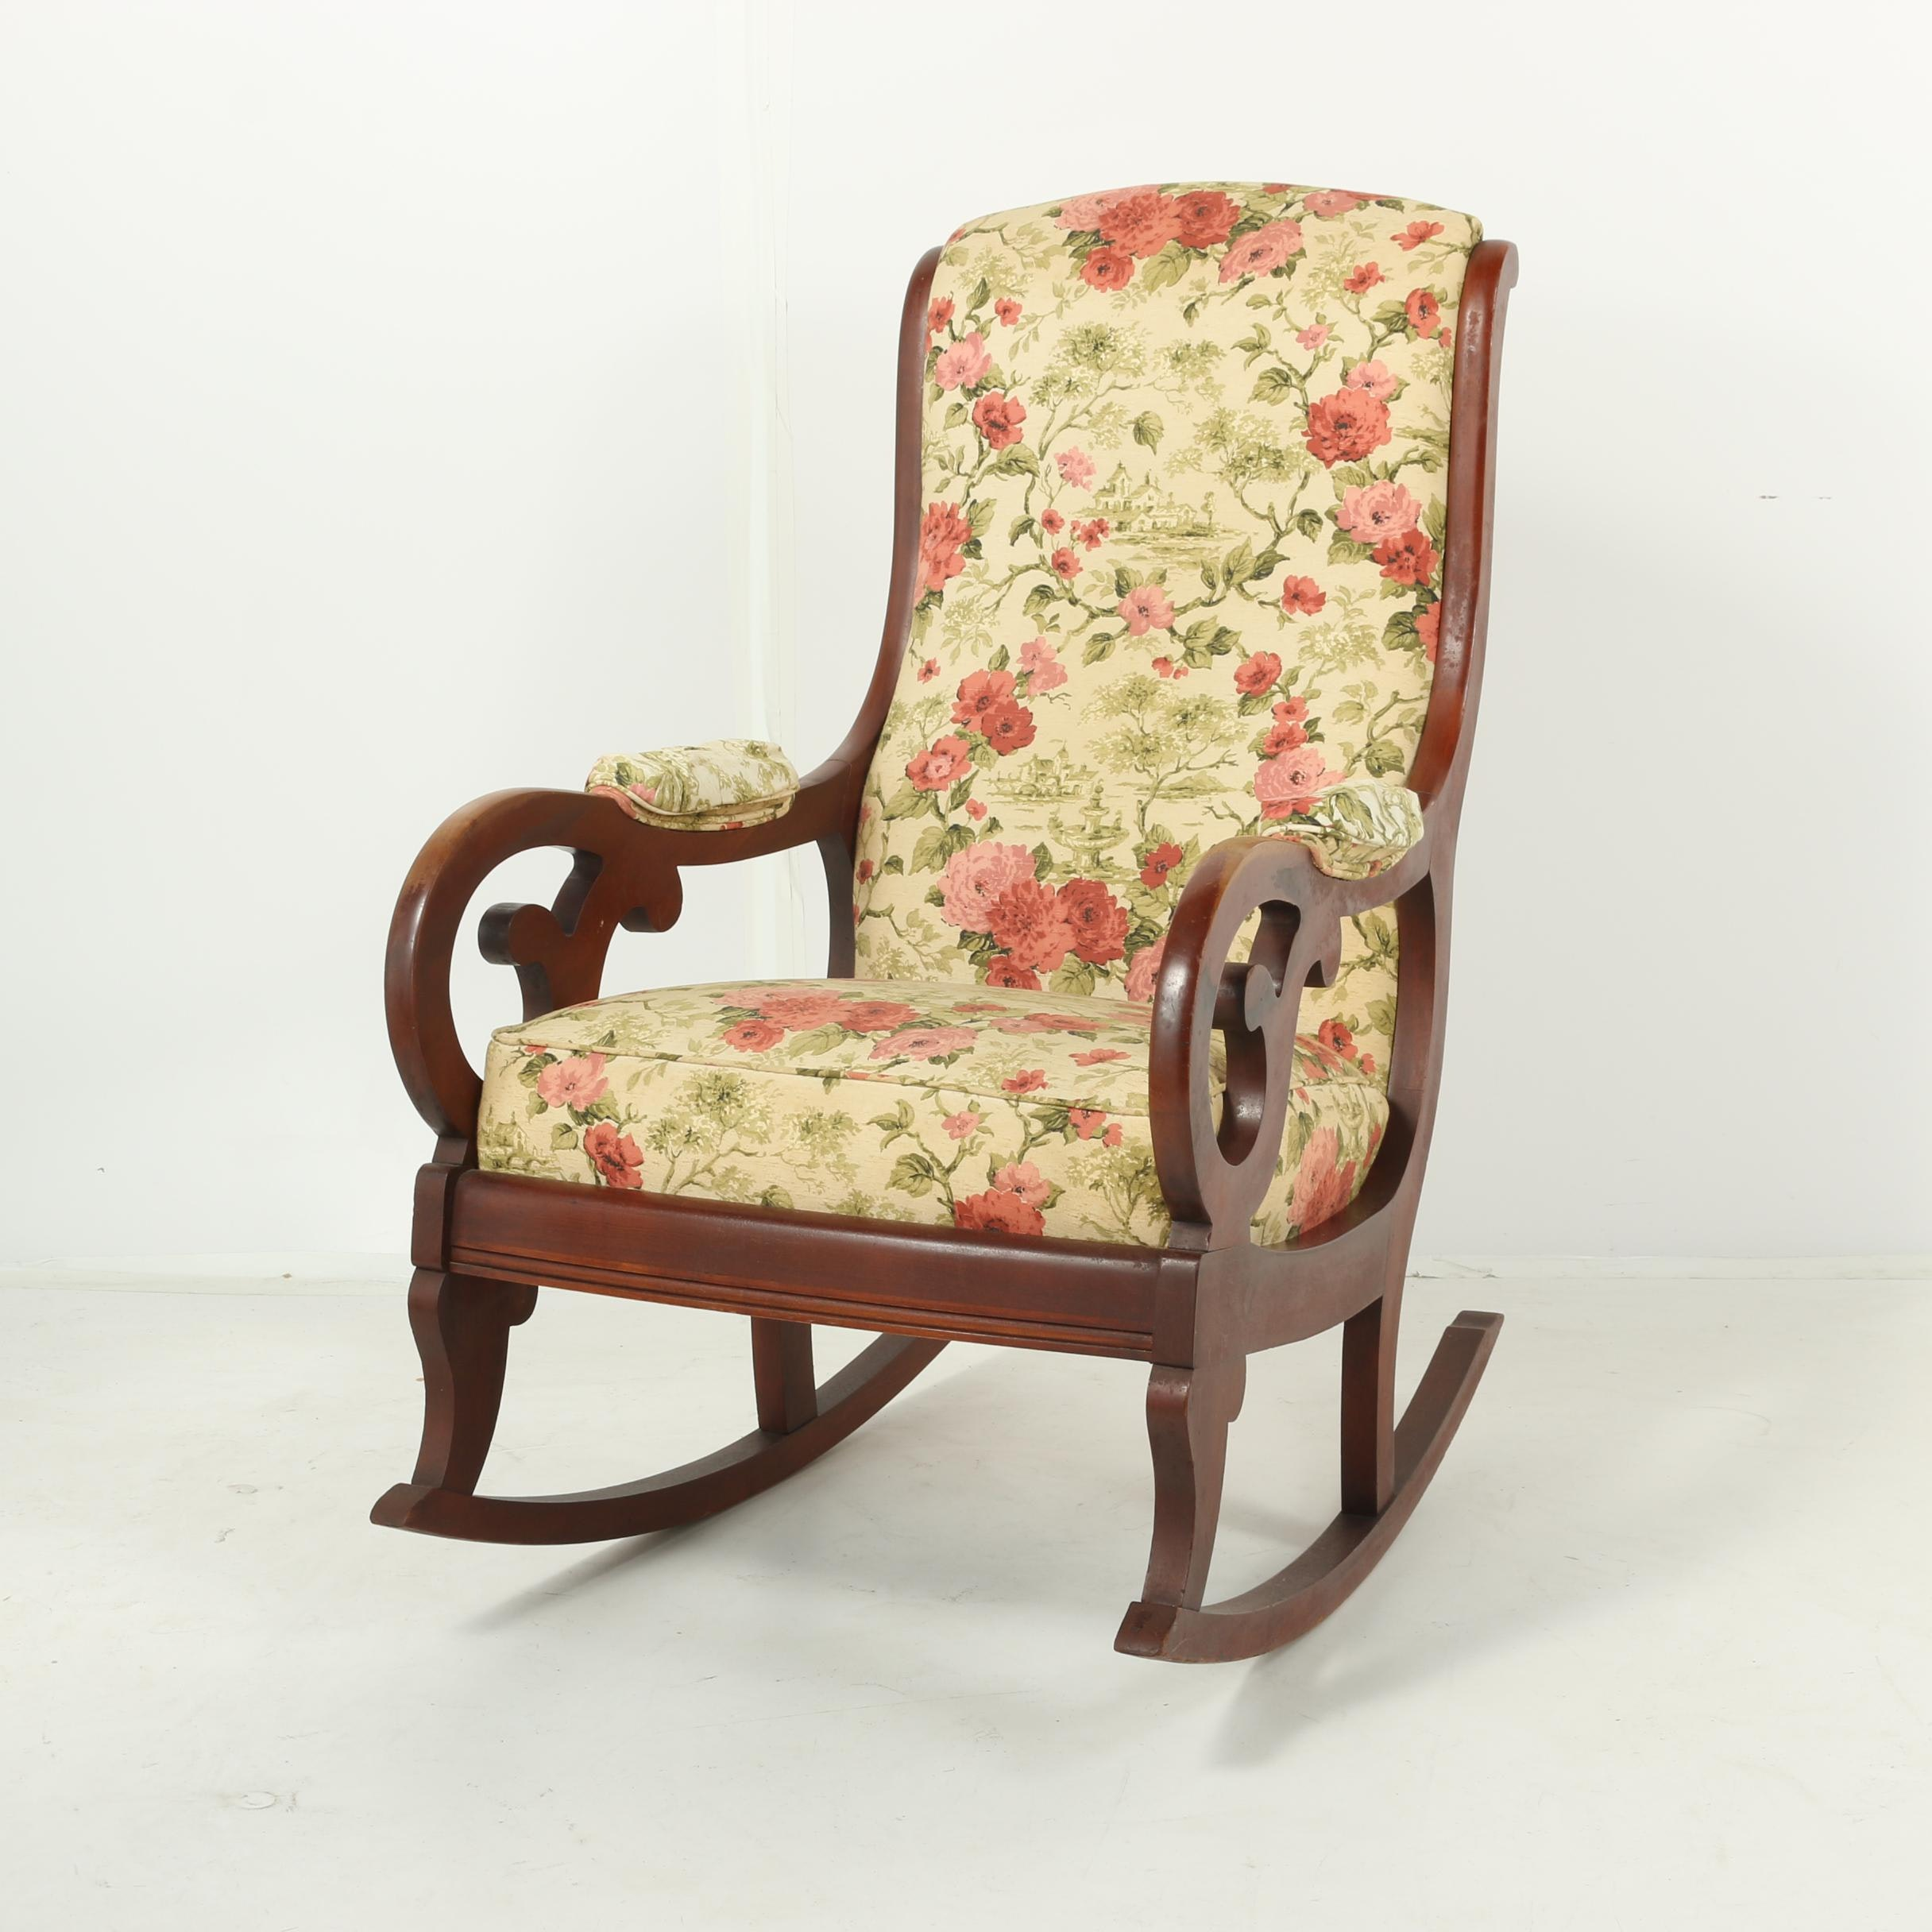 Floral Upholstered Cherry Finished Wooden Rocking Chair, 20th Century